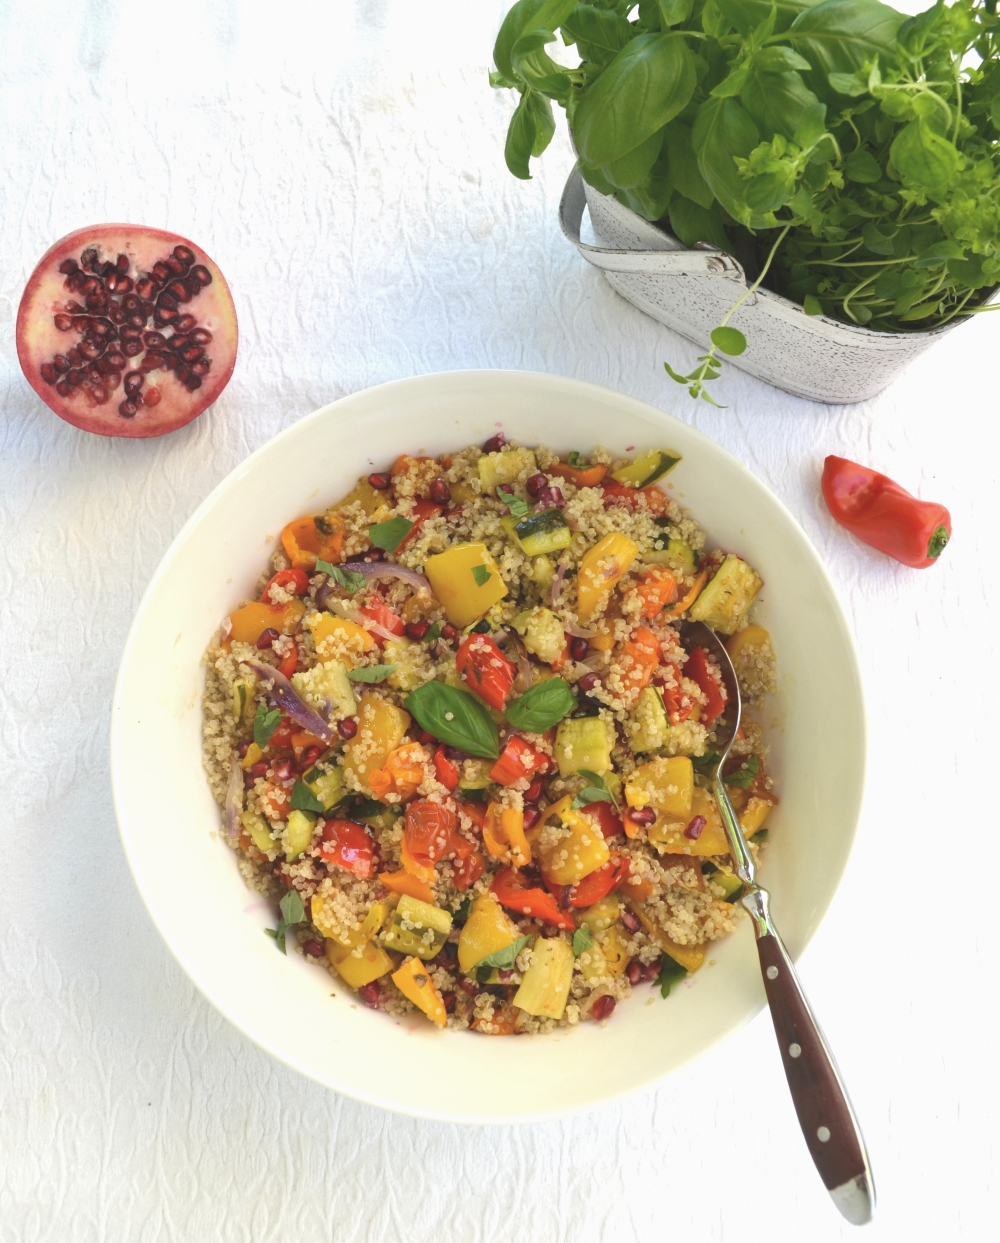 Mediterranean Quinoa Salad with Roasted Vegetables and Pomegranate 3